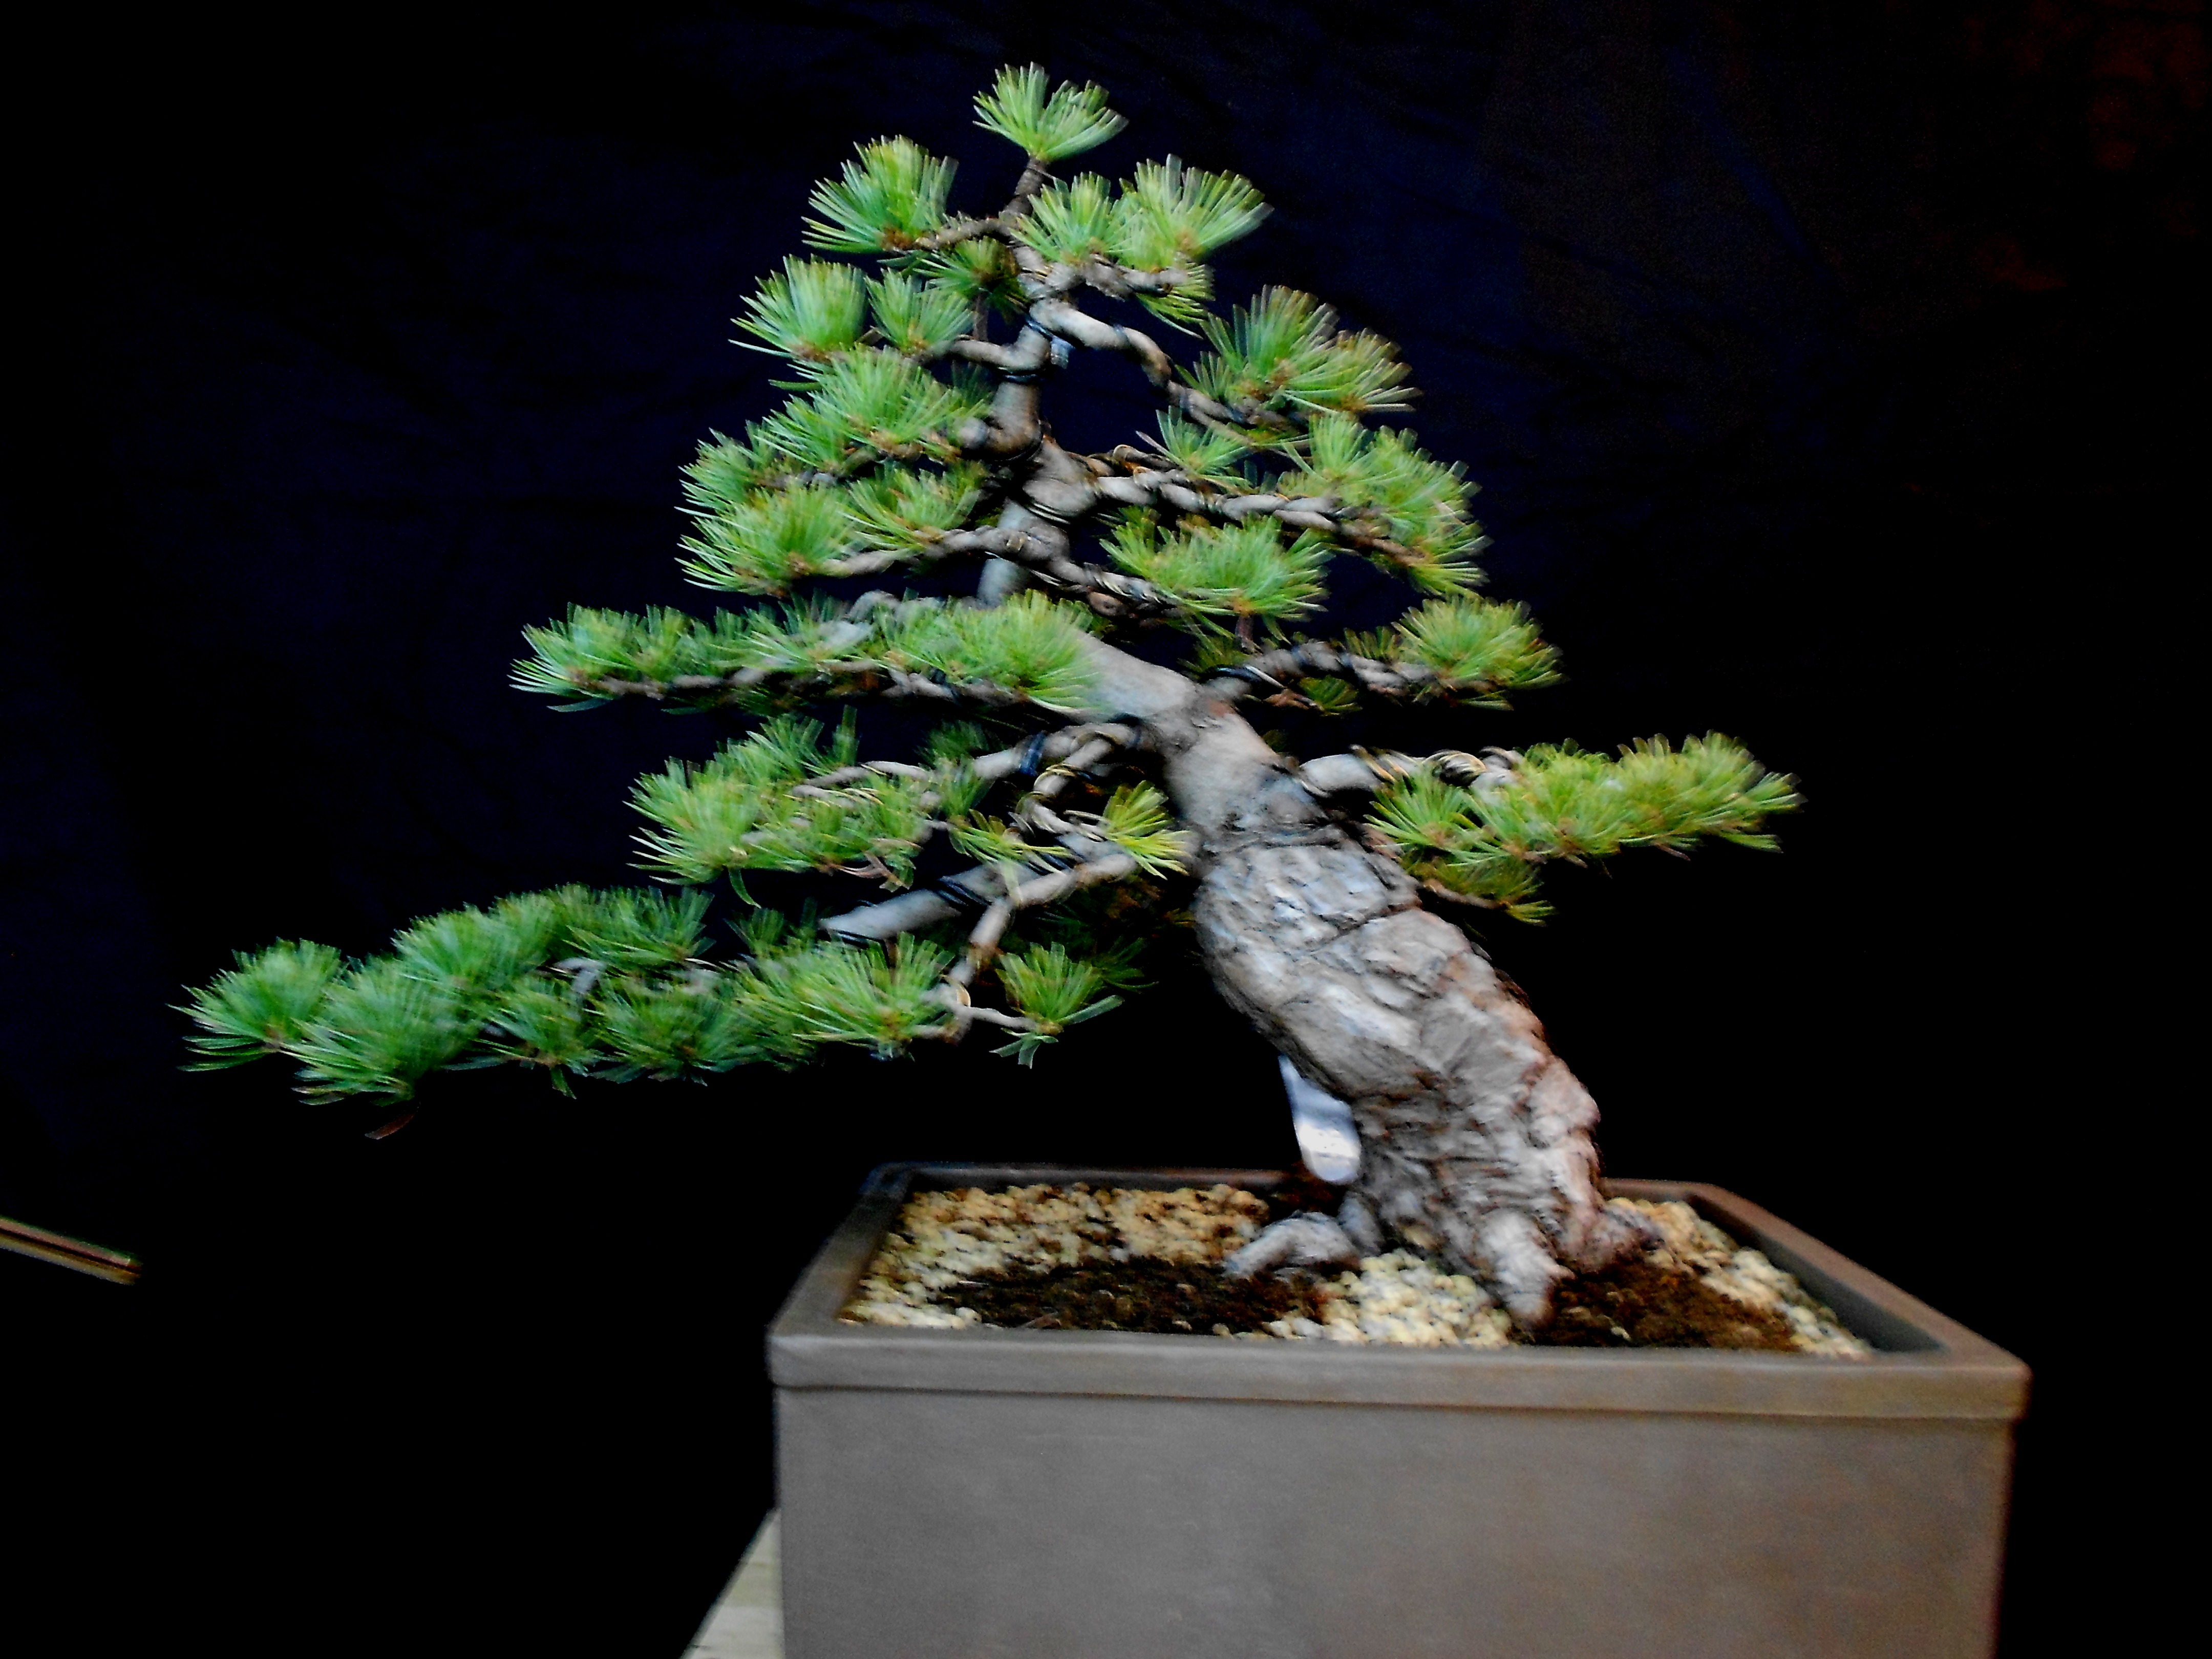 Japanese White Pine (Pinus Parviflora) - Bonsai by Fields, LLC